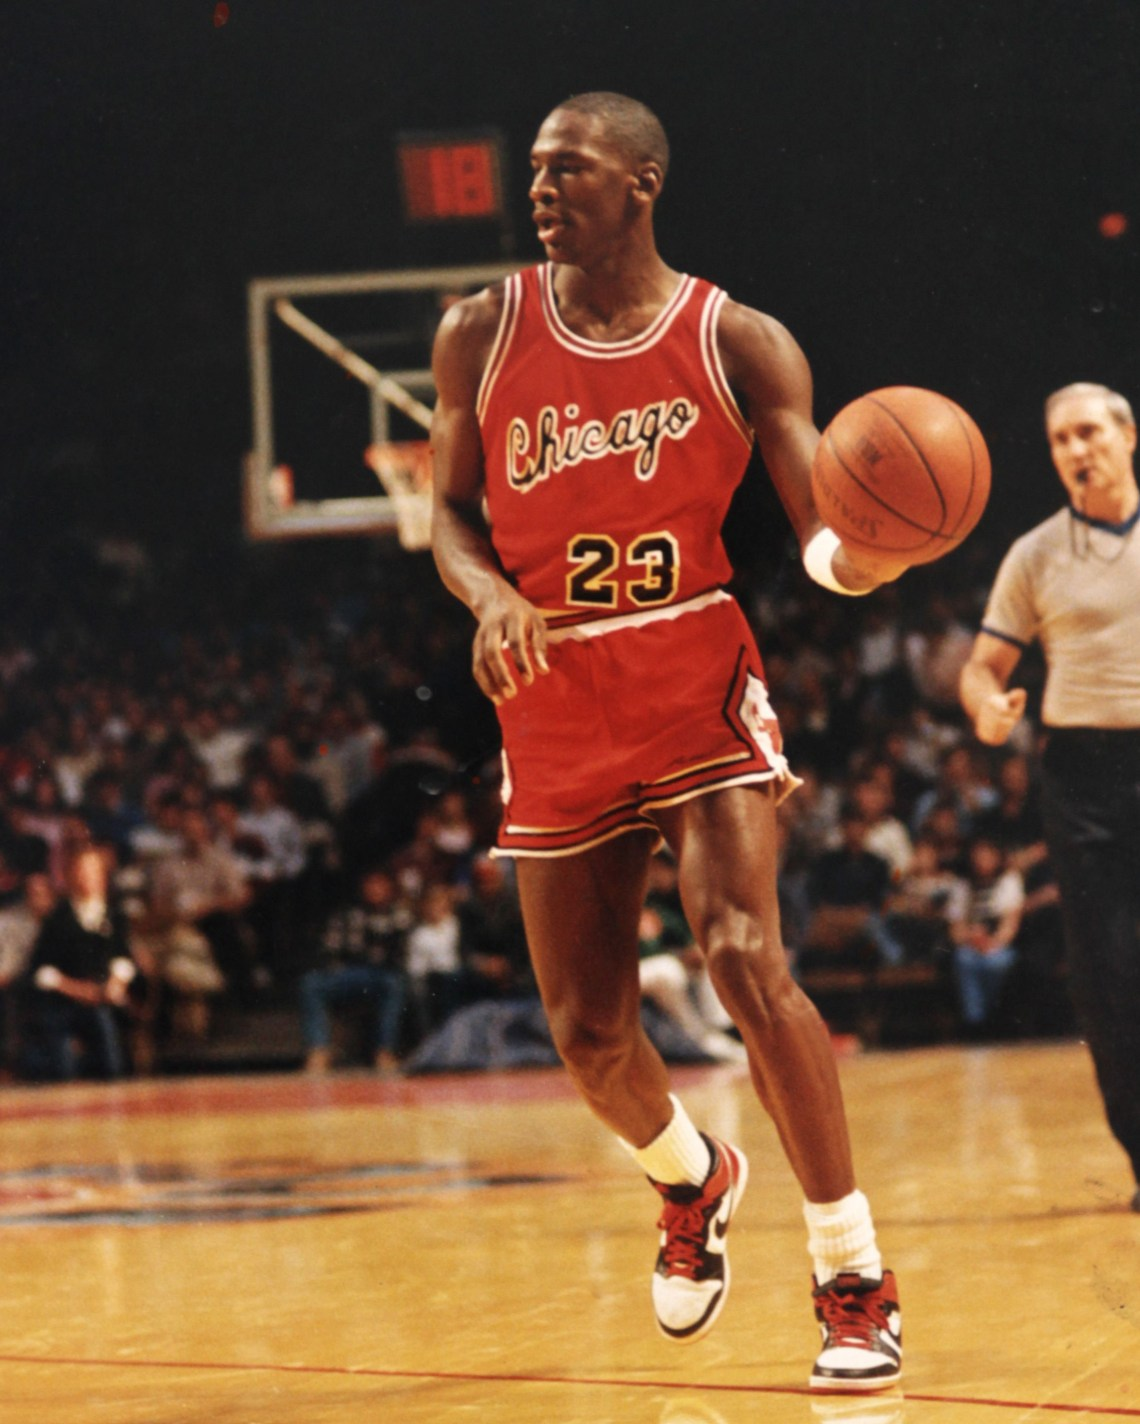 best loved 19d7c 96dab Recognizing a marketing opportunity when it presented itself, Nike happily  paid the fine. And MJ rocked them all the way to his Rookie of the Year  honor.